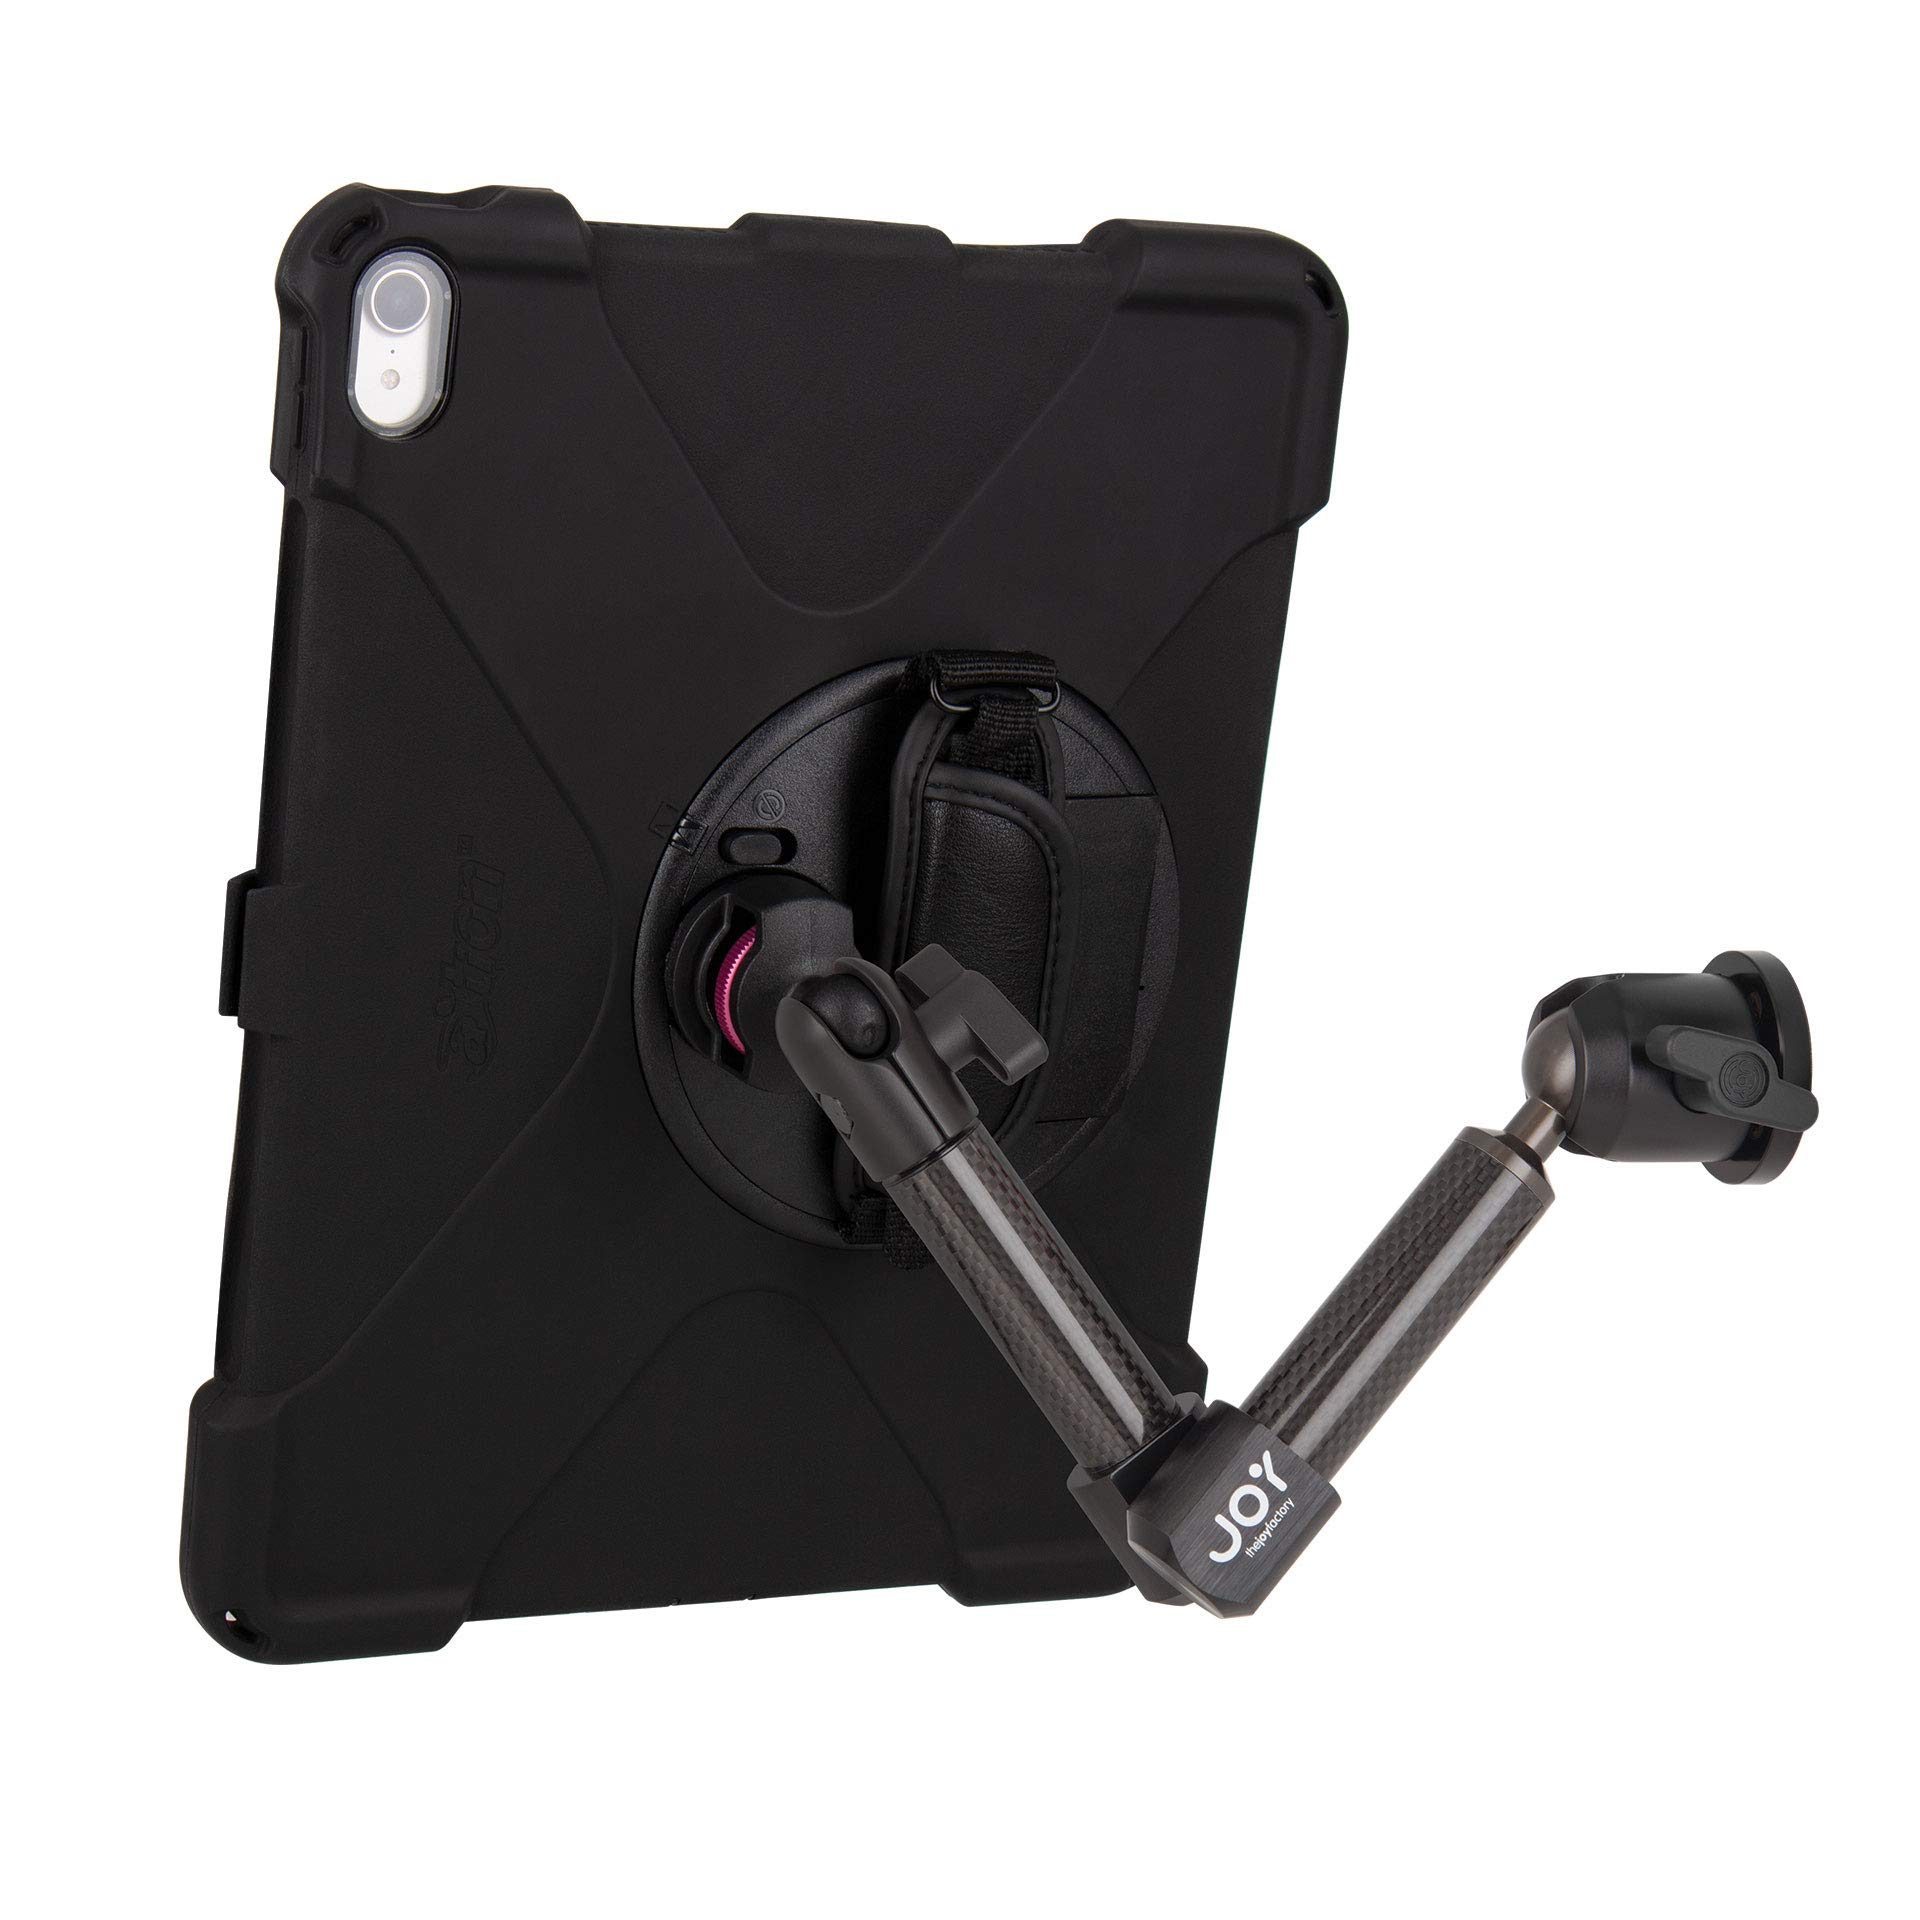 """The Joy Factory MagConnect Carbon Fiber Wall/Counter Mount with aXtion Bold MP Water-Resistant Rugged Shockproof Case for iPad Pro 12.9"""" [3rd Gen], Built-in Screen Protector, Hand Strap (MWA4104MP)"""